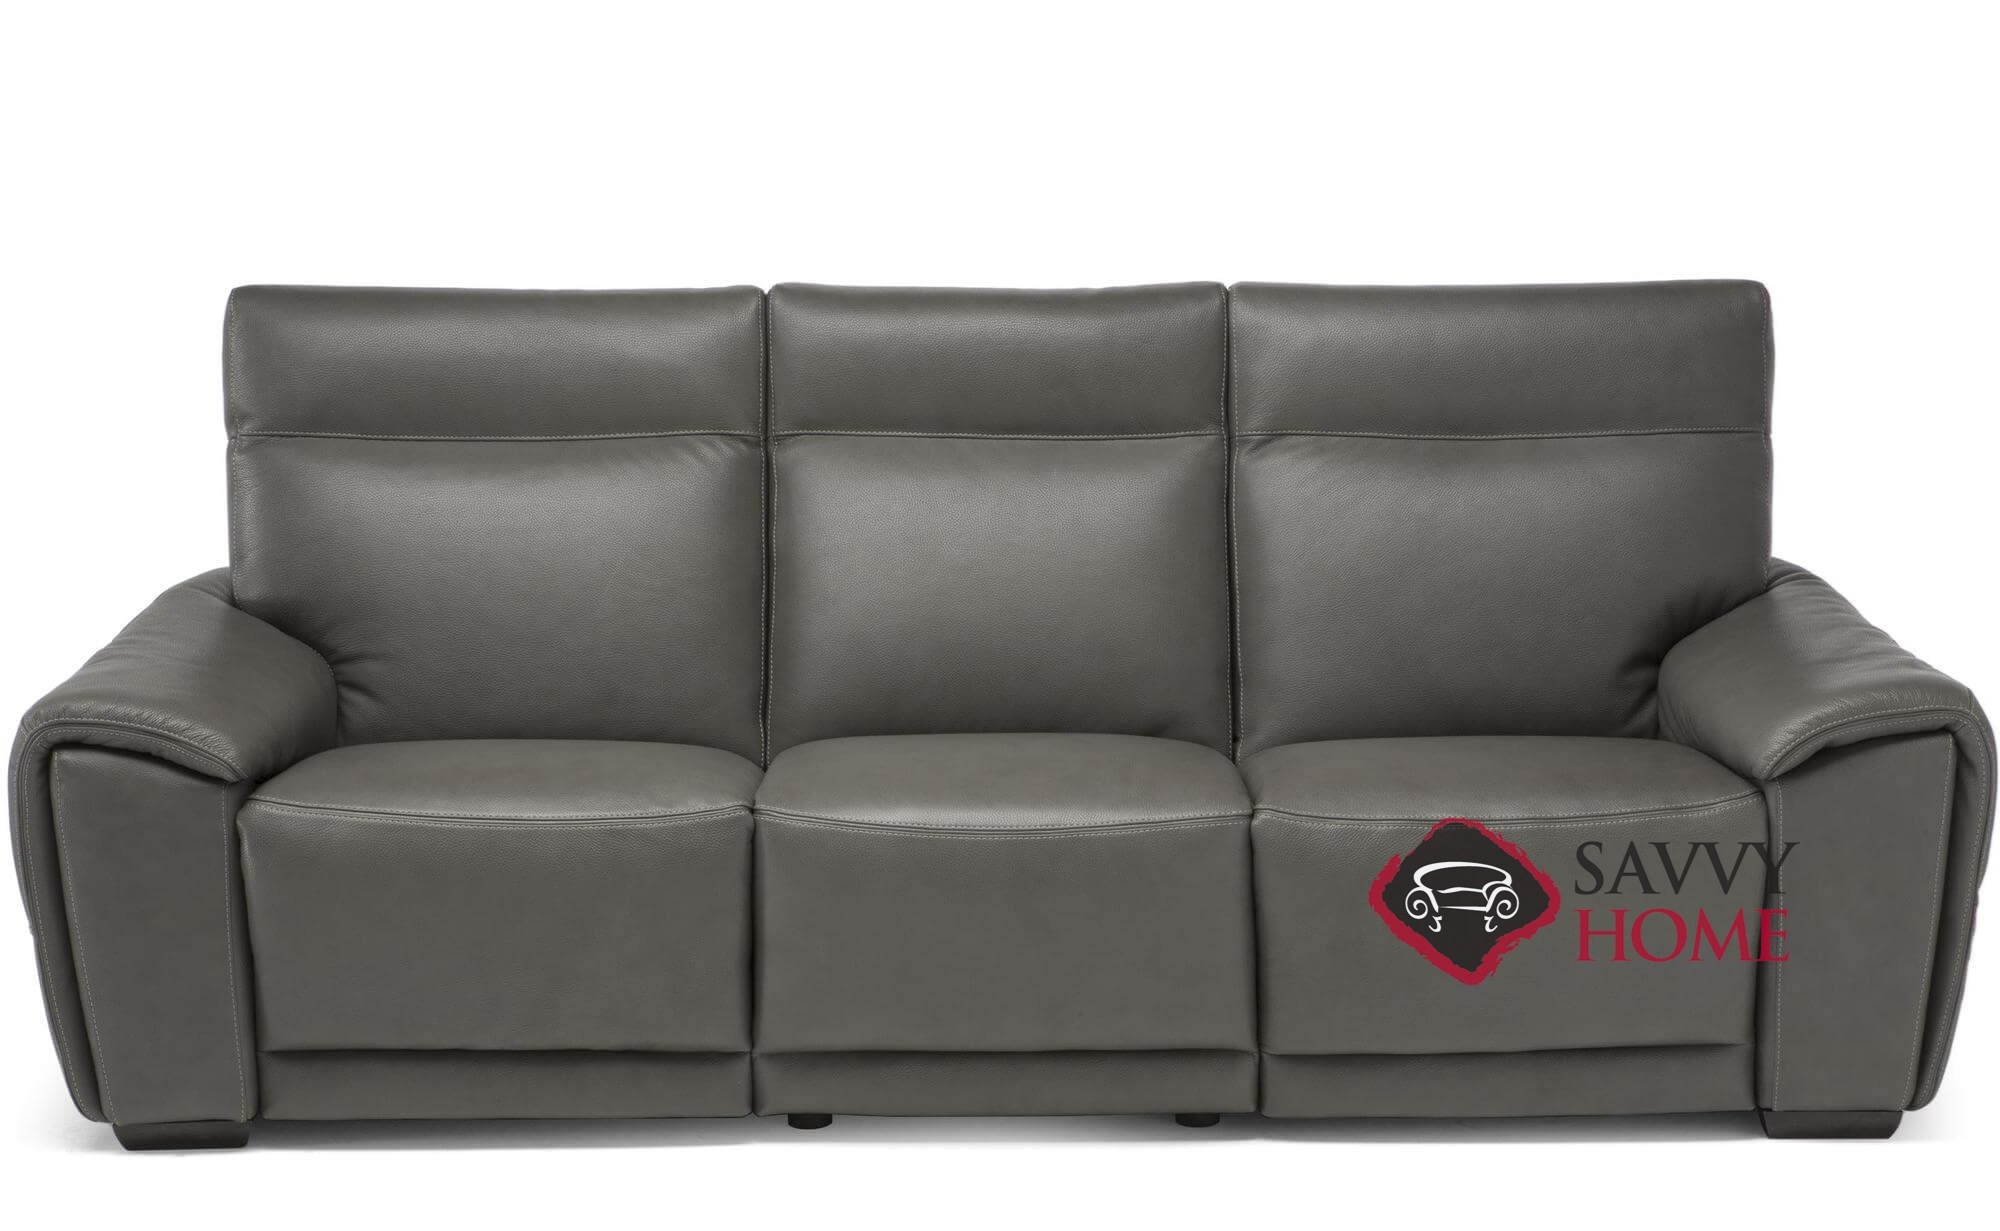 With a good deal on furniture, you not only stand to save m. Rispetto (C048) Leather Reclining Sofa by Natuzzi is Fully ...